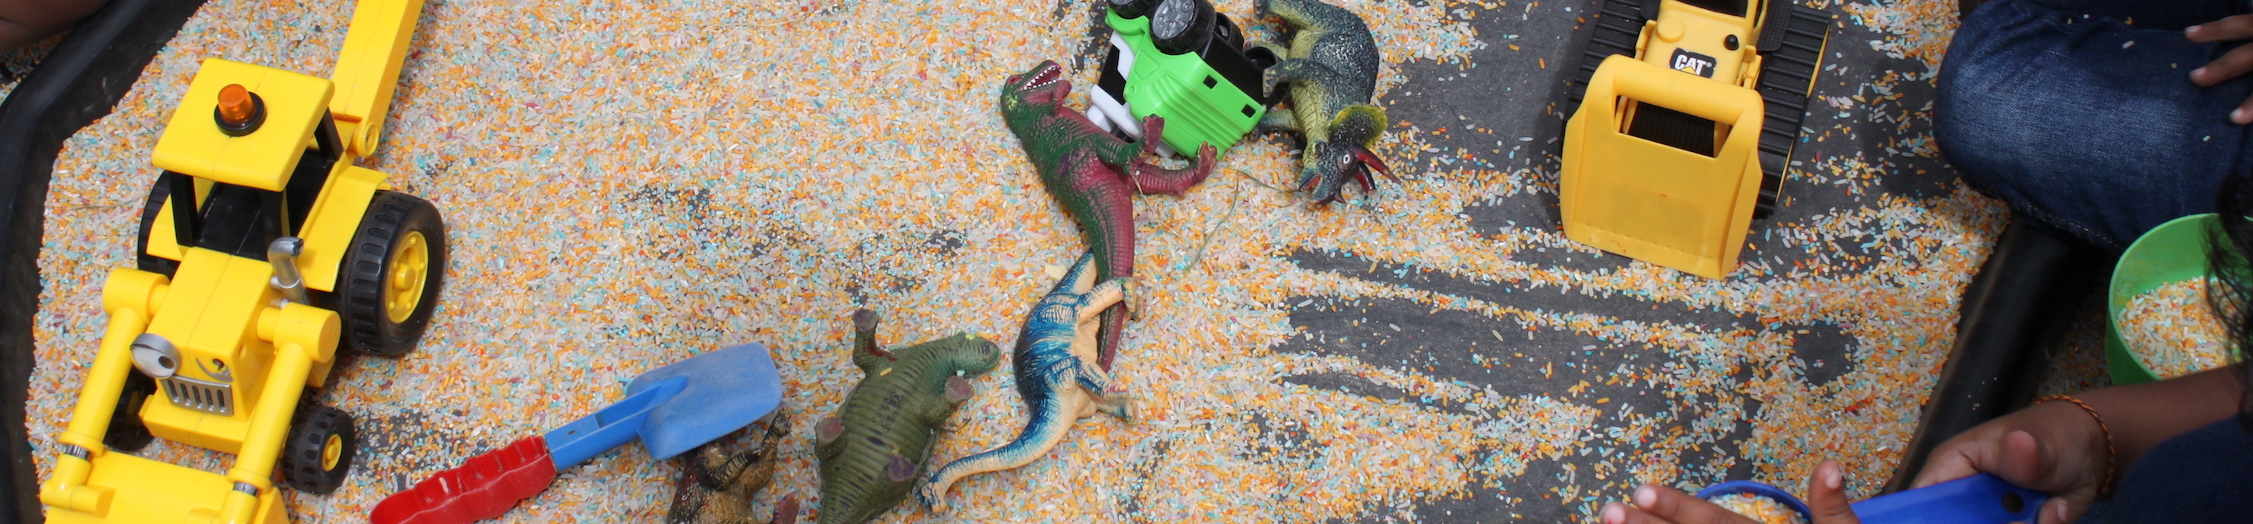 Sand tray and toys